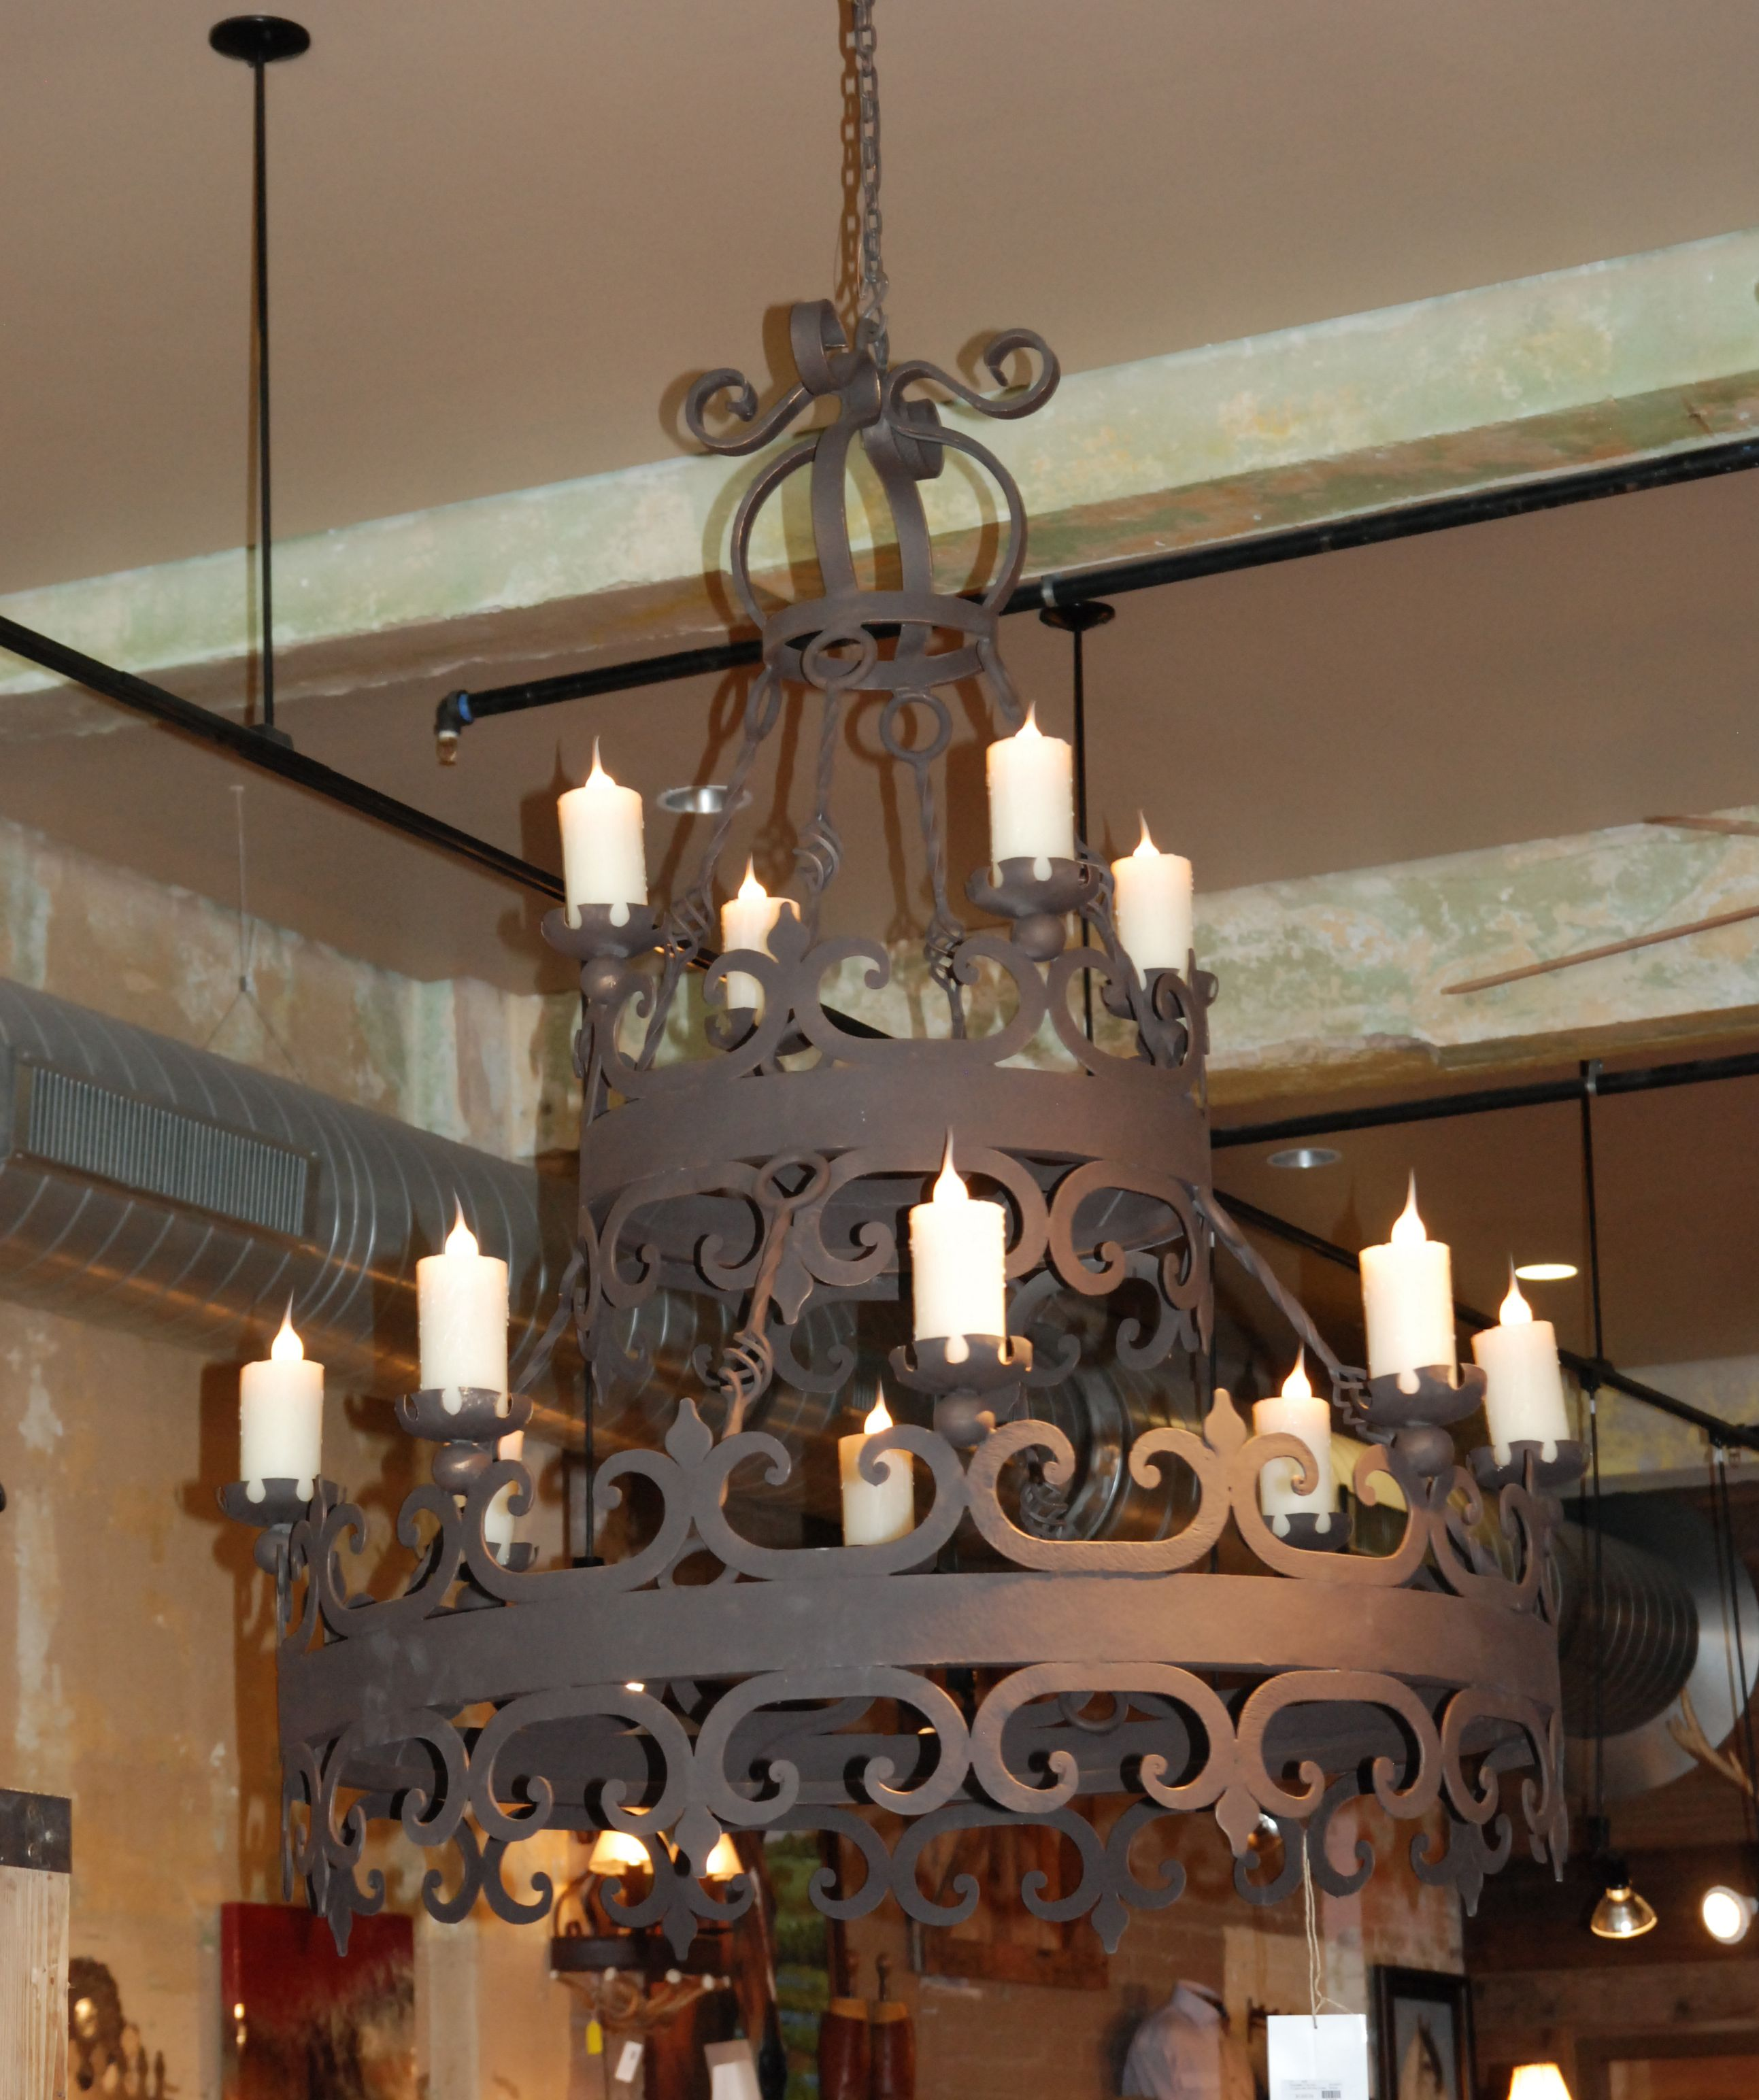 2 Tier Iron Chandelier w 12 lights and wax covers to give the